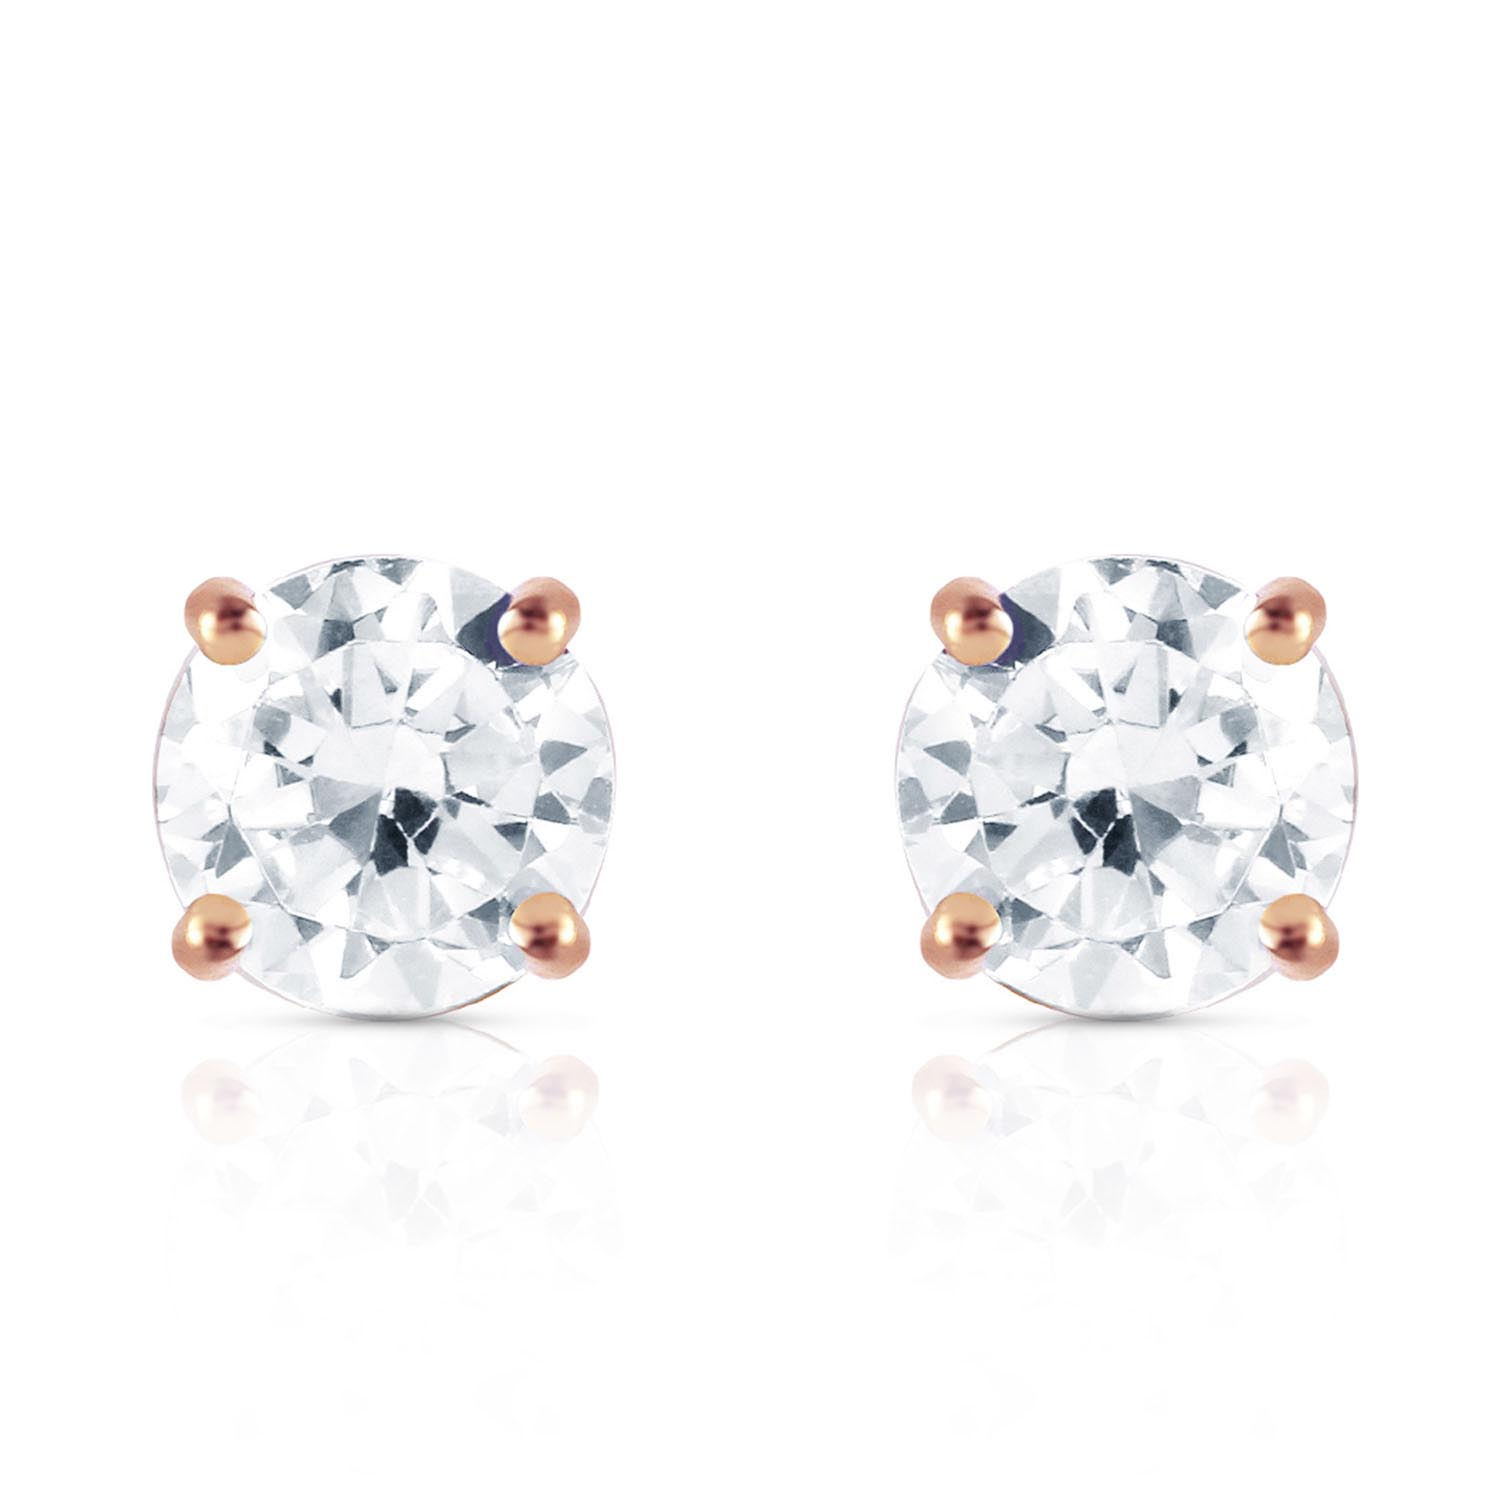 Diamond Stud Earrings in 14K Rose Gold